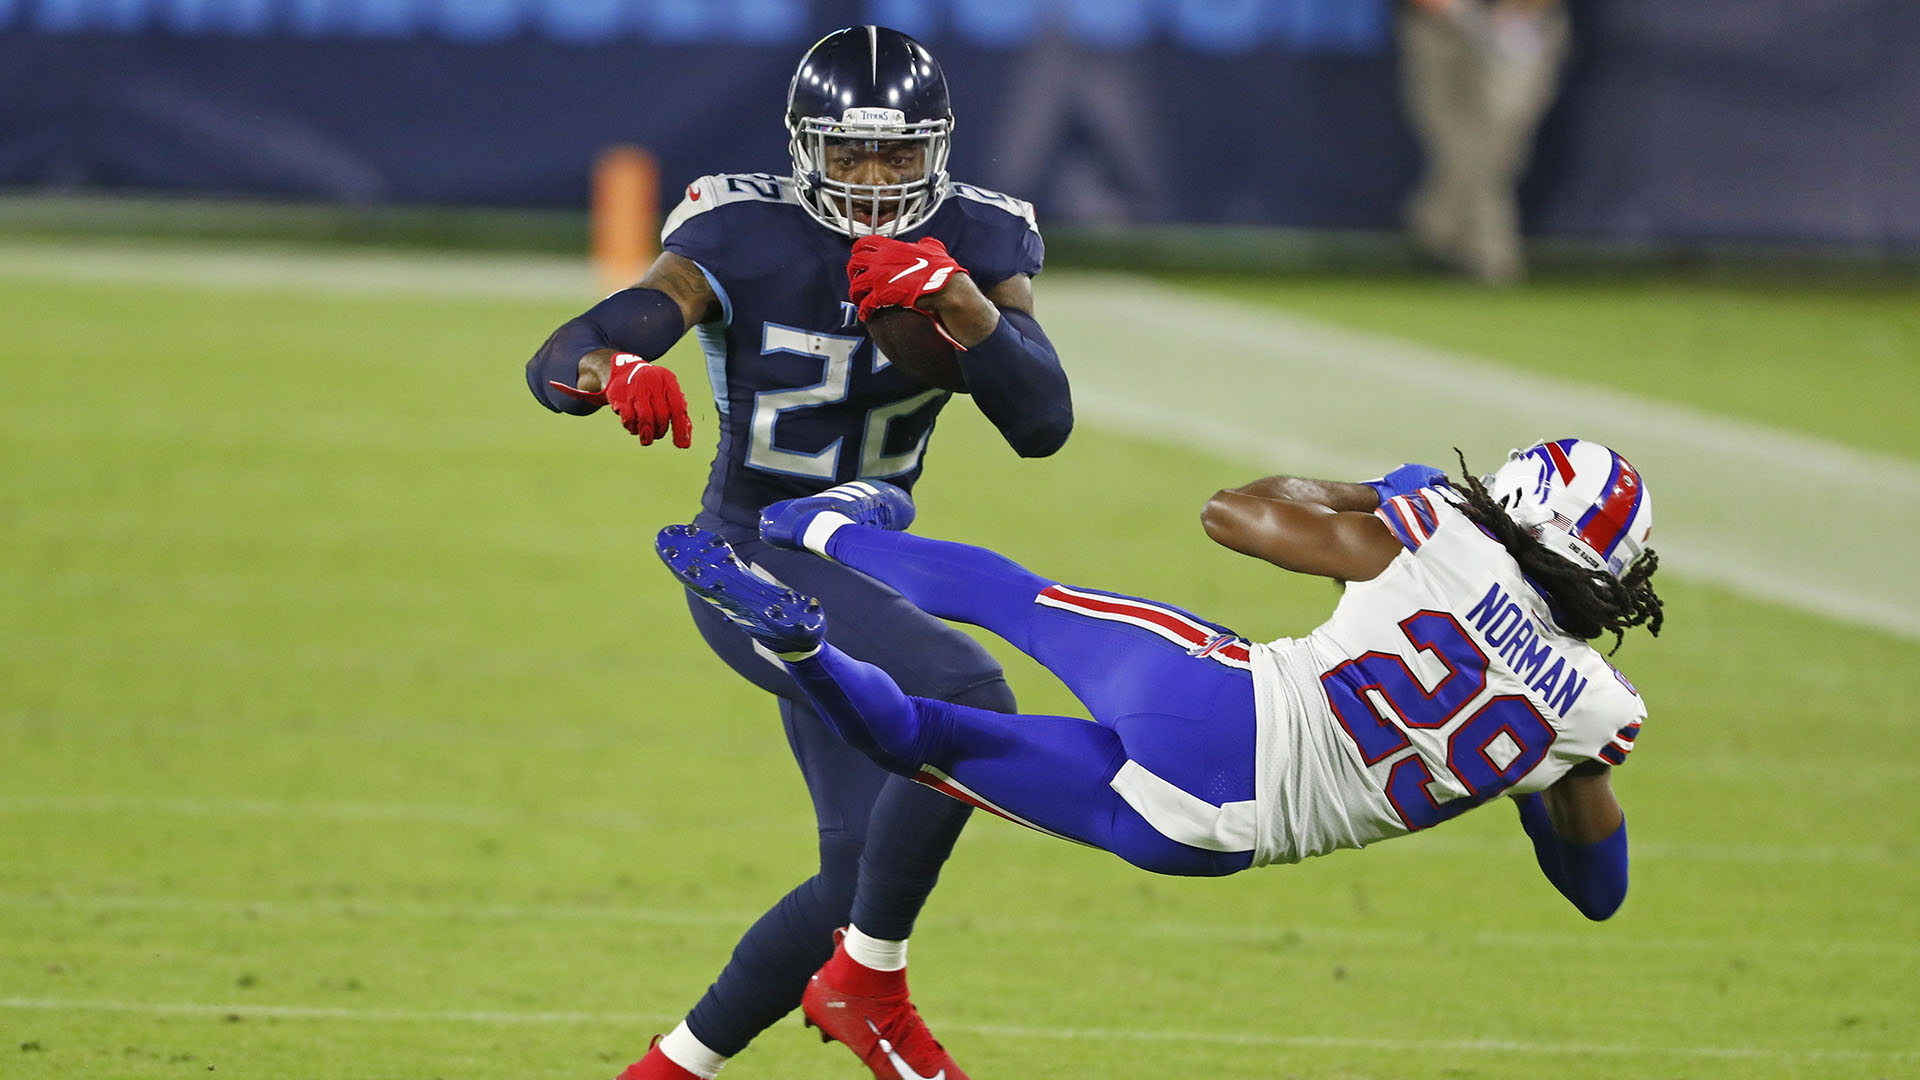 Turnovers Penalties Haunt Bills In First Loss Of The Season 42 16 Blowout Vs Titans Rochesterfirst